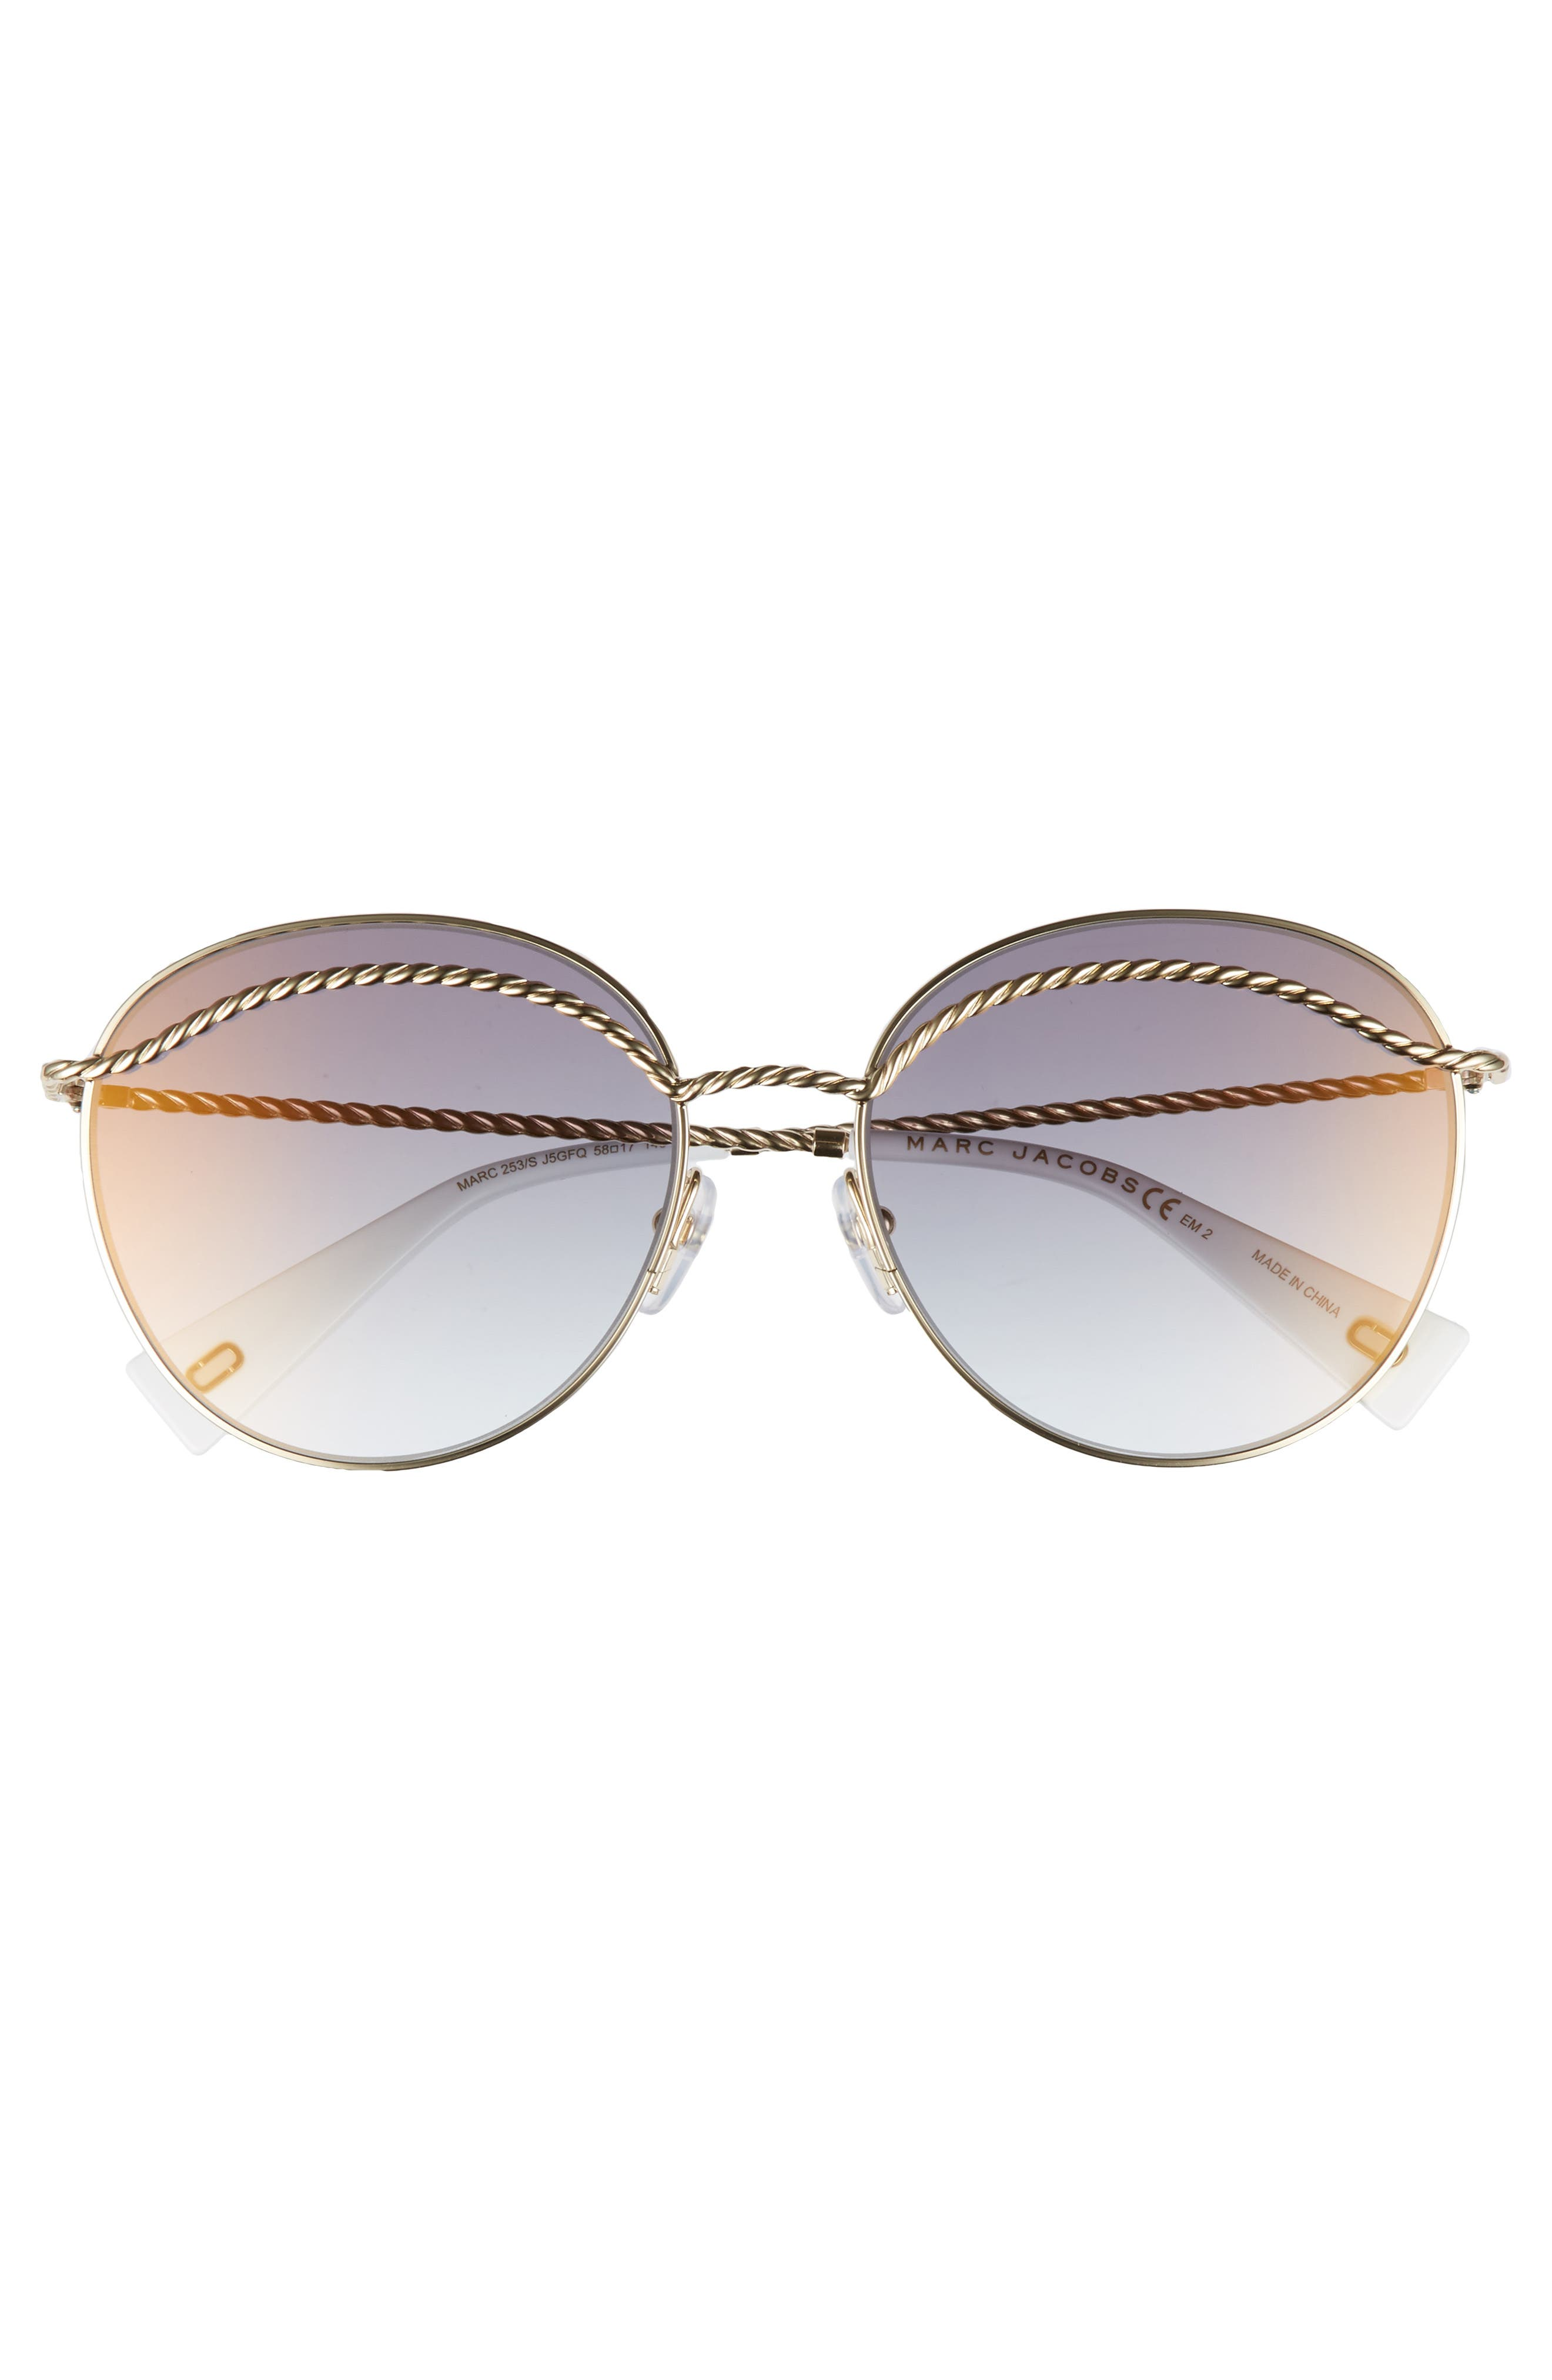 Alternate Image 3  - MARC JACOBS 58mm Round Sunglasses